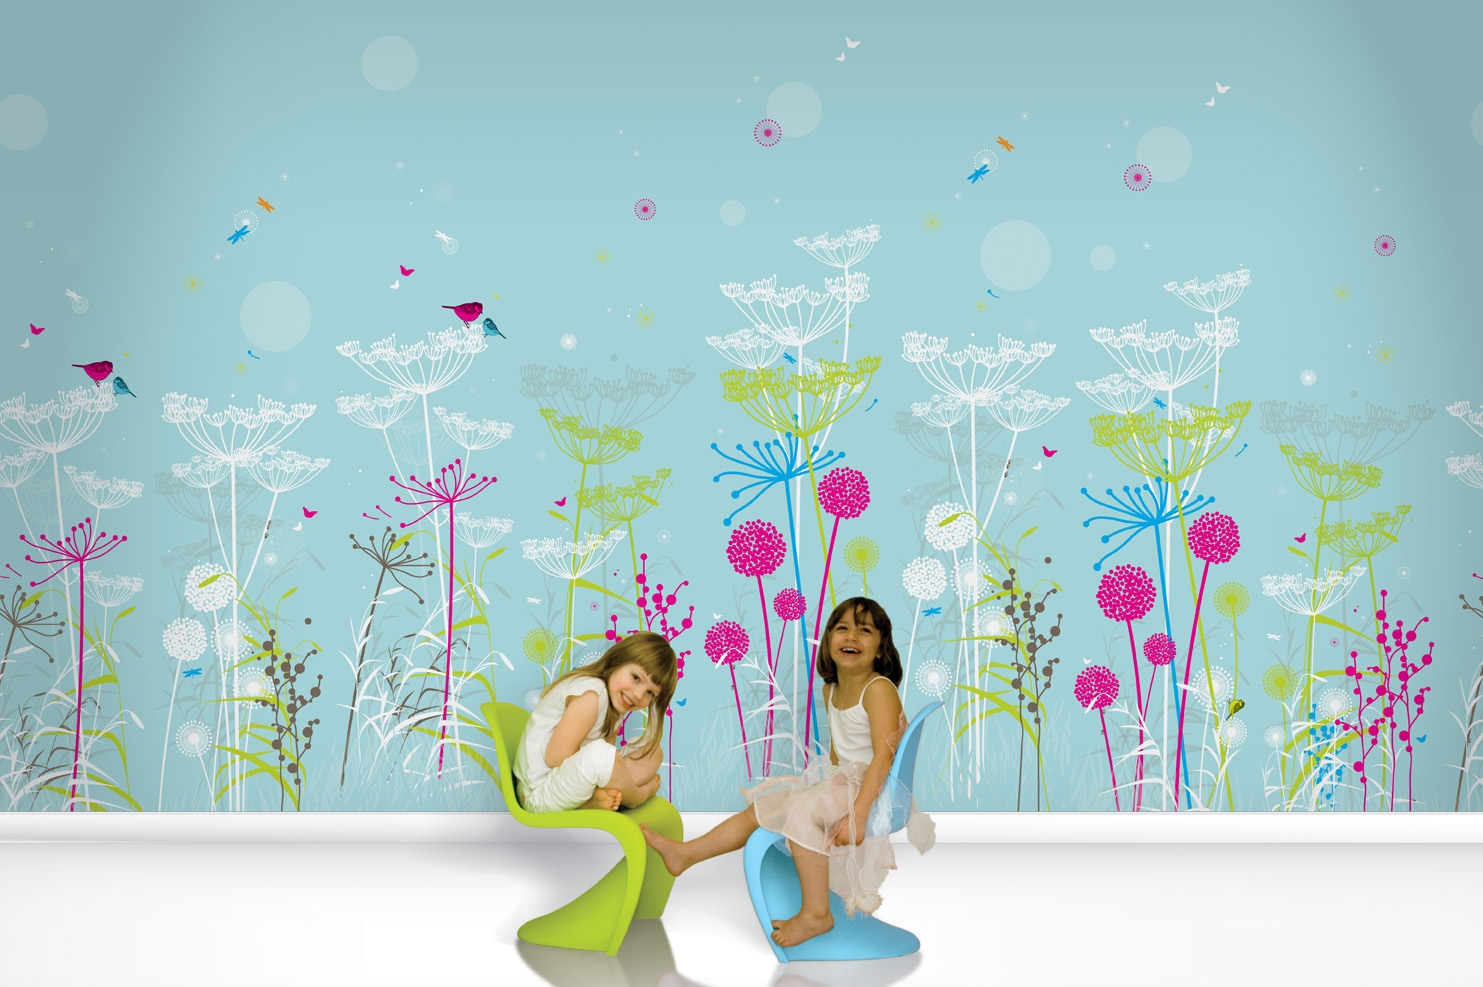 Kid Lost Garden Wallpaper Design